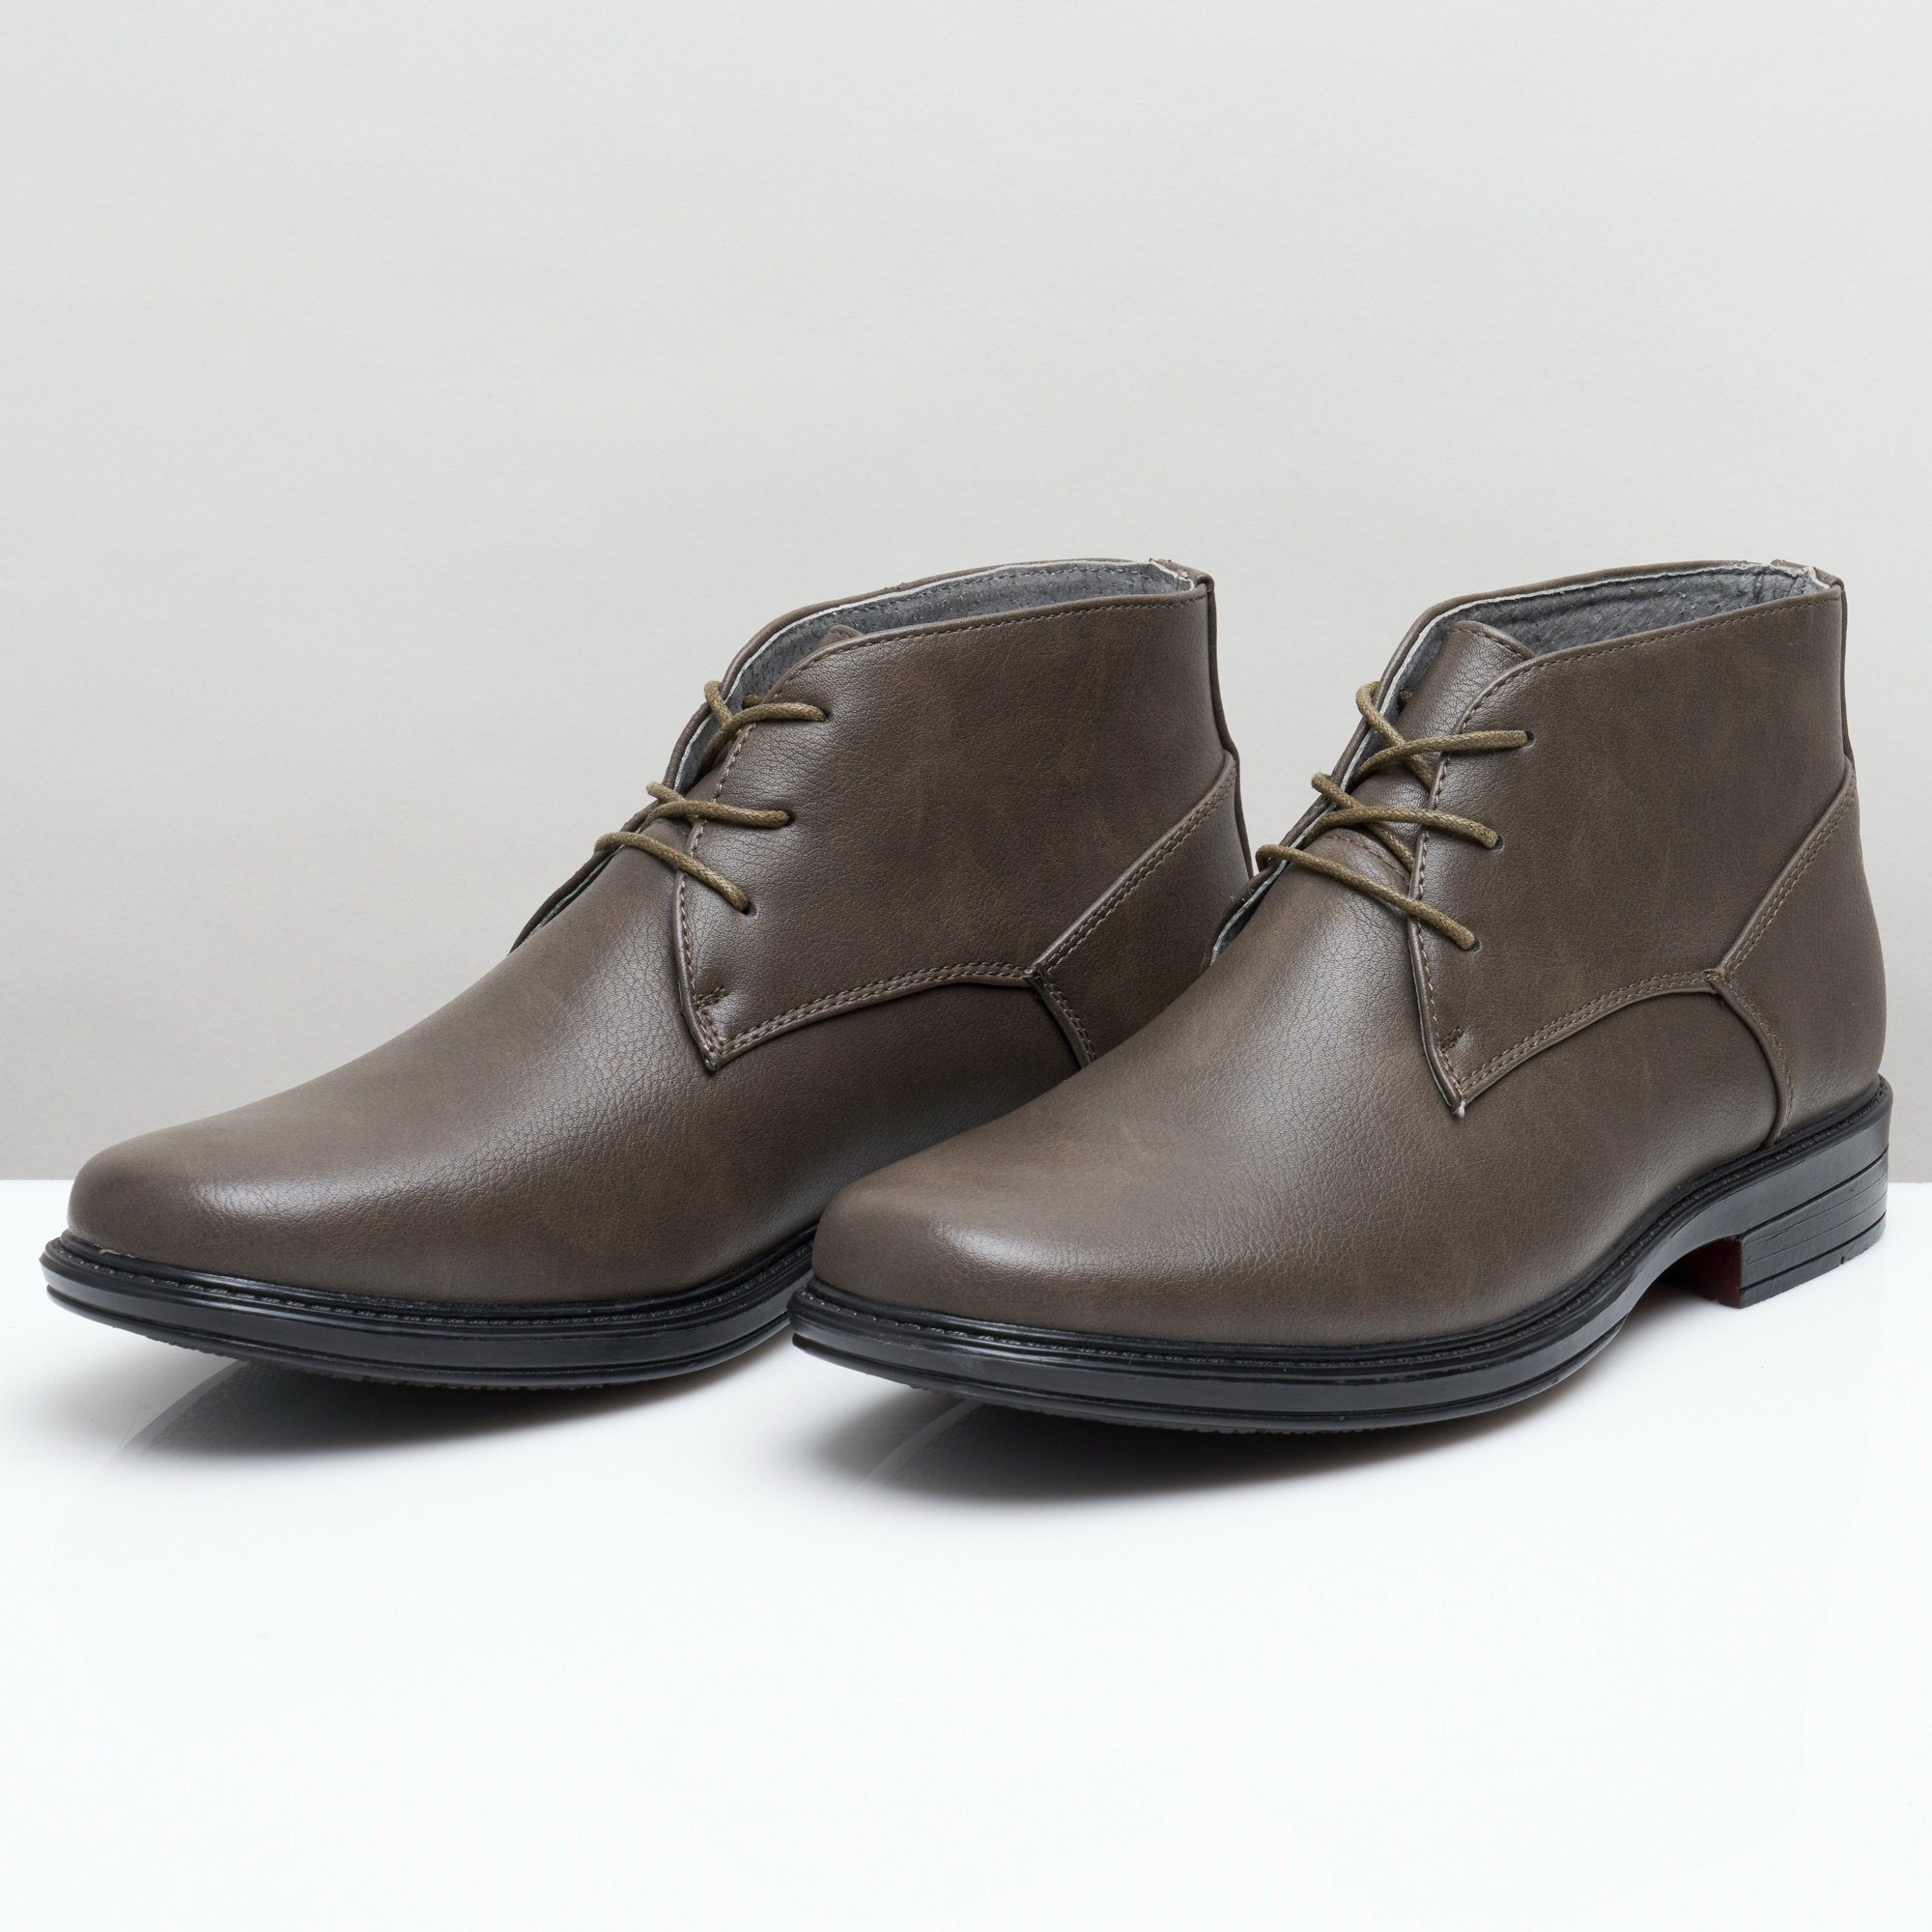 f2dc2308634 Details about Alpine Swiss Mens Ankle Boots Dressy Casual Leather Lined  Dress Shoes Lace up NW